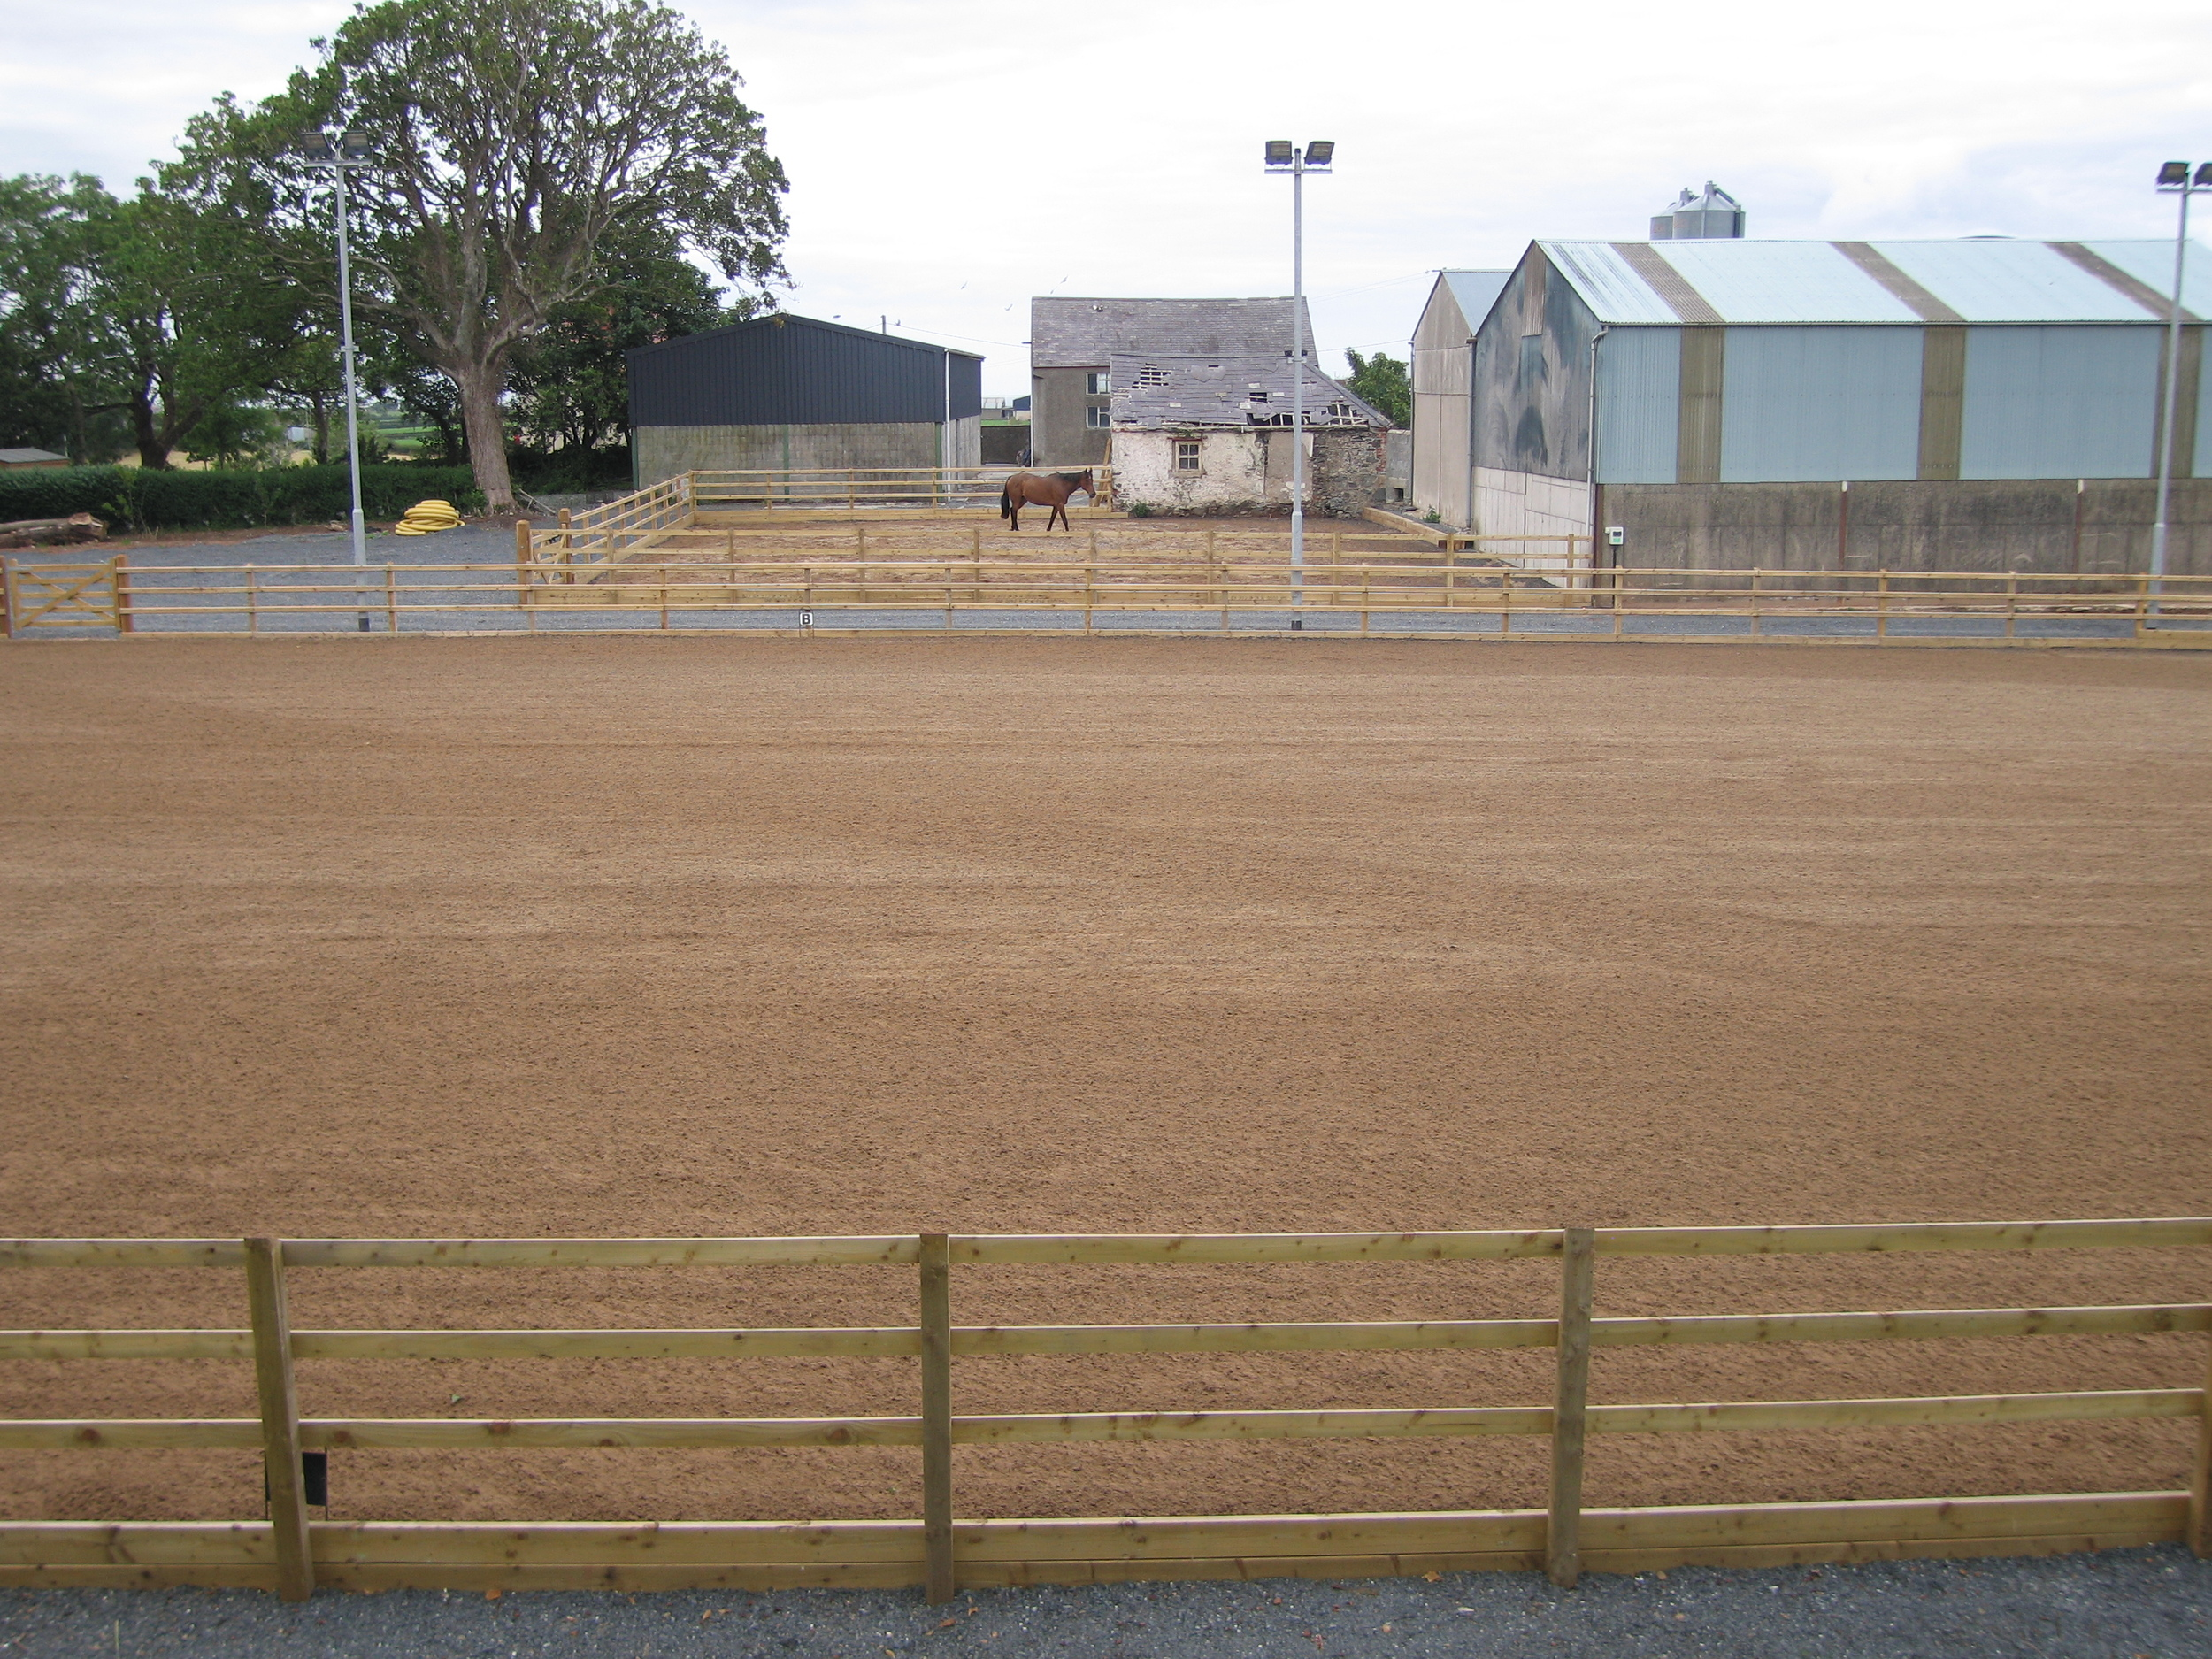 equestrian facilities with arena and lunging pen northern ireland